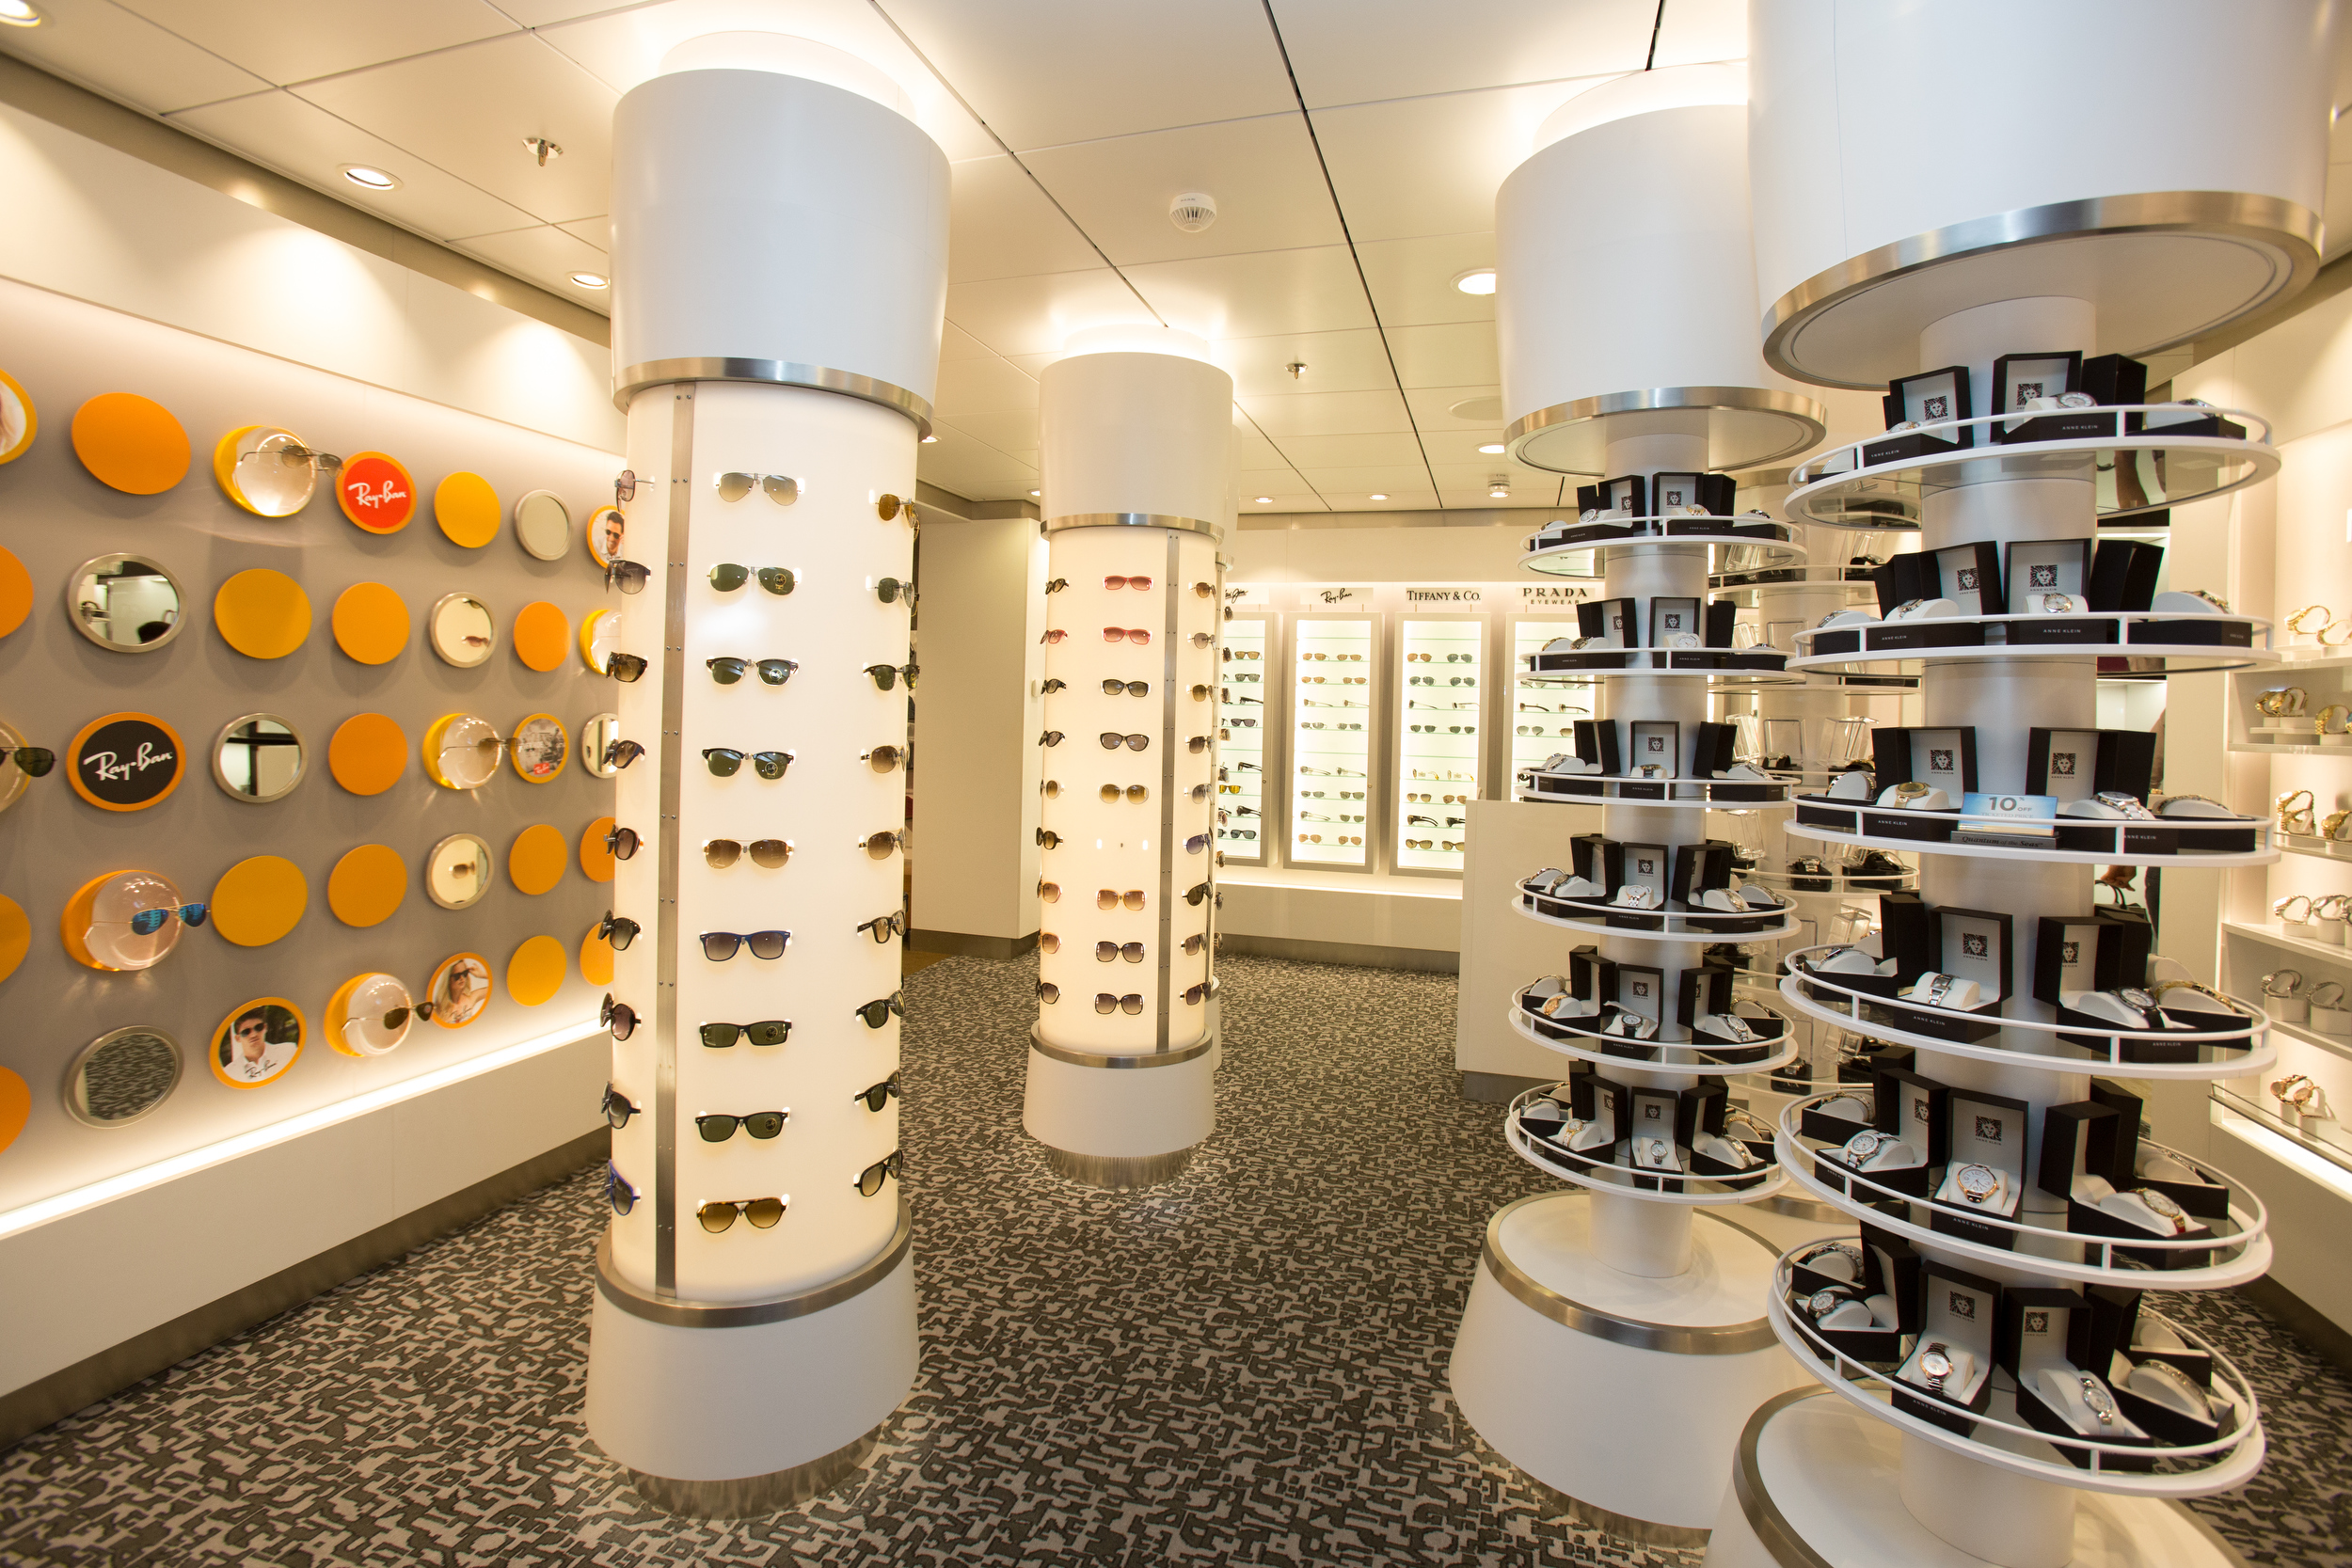 Royal Caribbean Anthem of the Seas Interior Shops 1.jpg